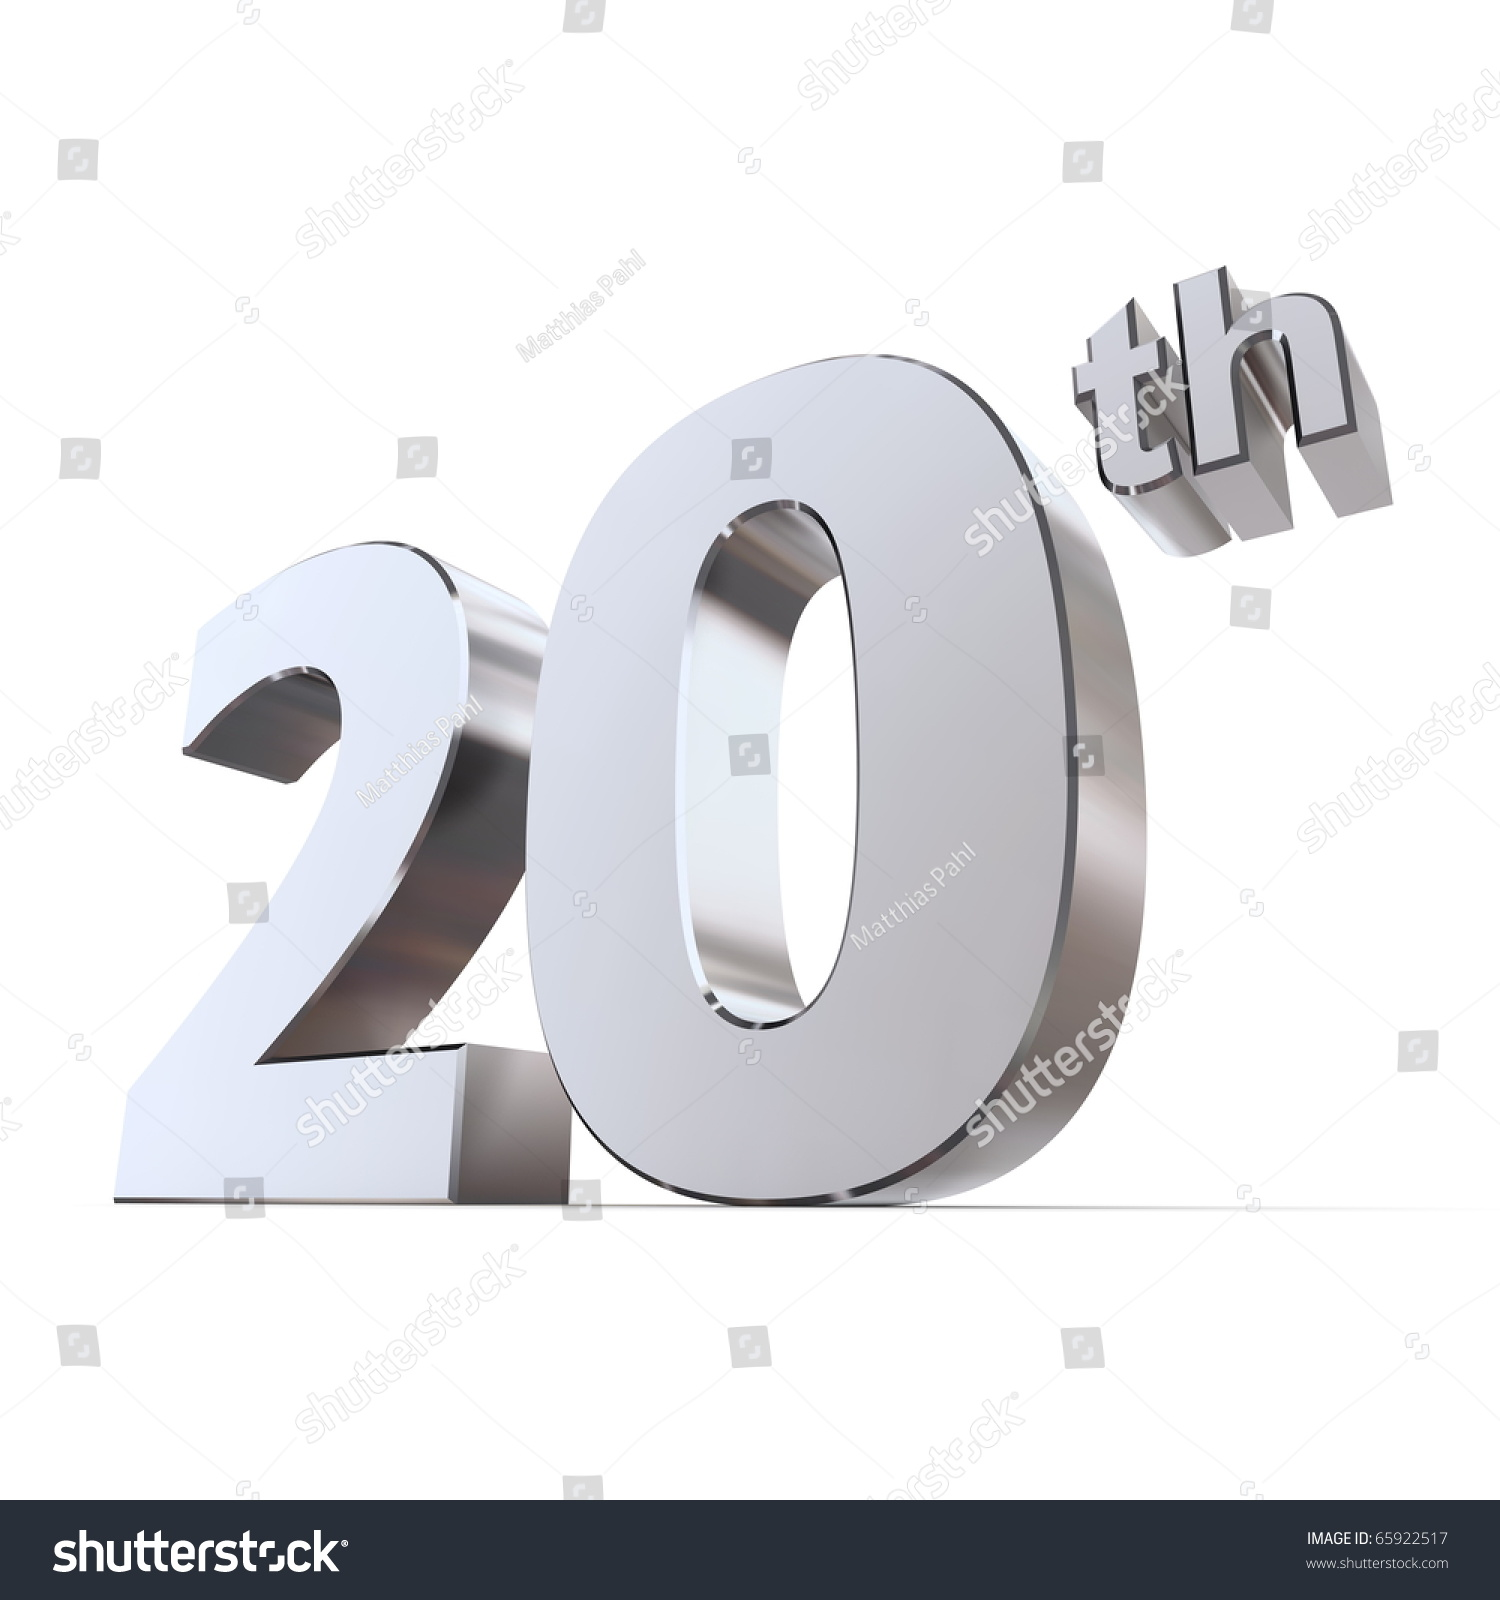 Shiny 3d number 20th made silverchrome stock illustration 65922517 shiny 3d number 20th made silverchrome stock illustration 65922517 shutterstock biocorpaavc Choice Image